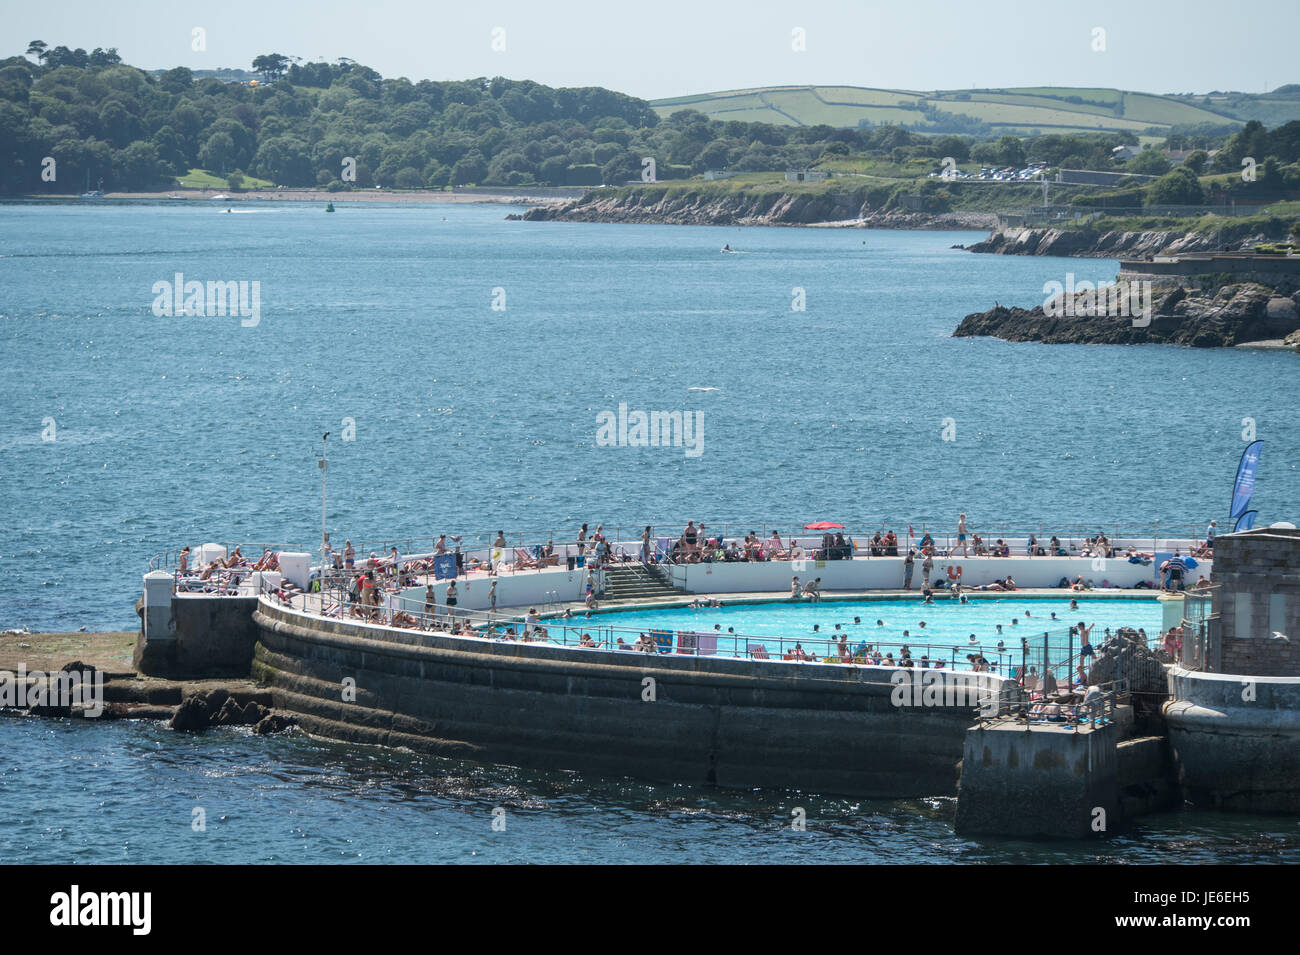 Paul Slater/PSI - Inside Pool and Lido, On Plymouth Hoe, Devon - Stock Image